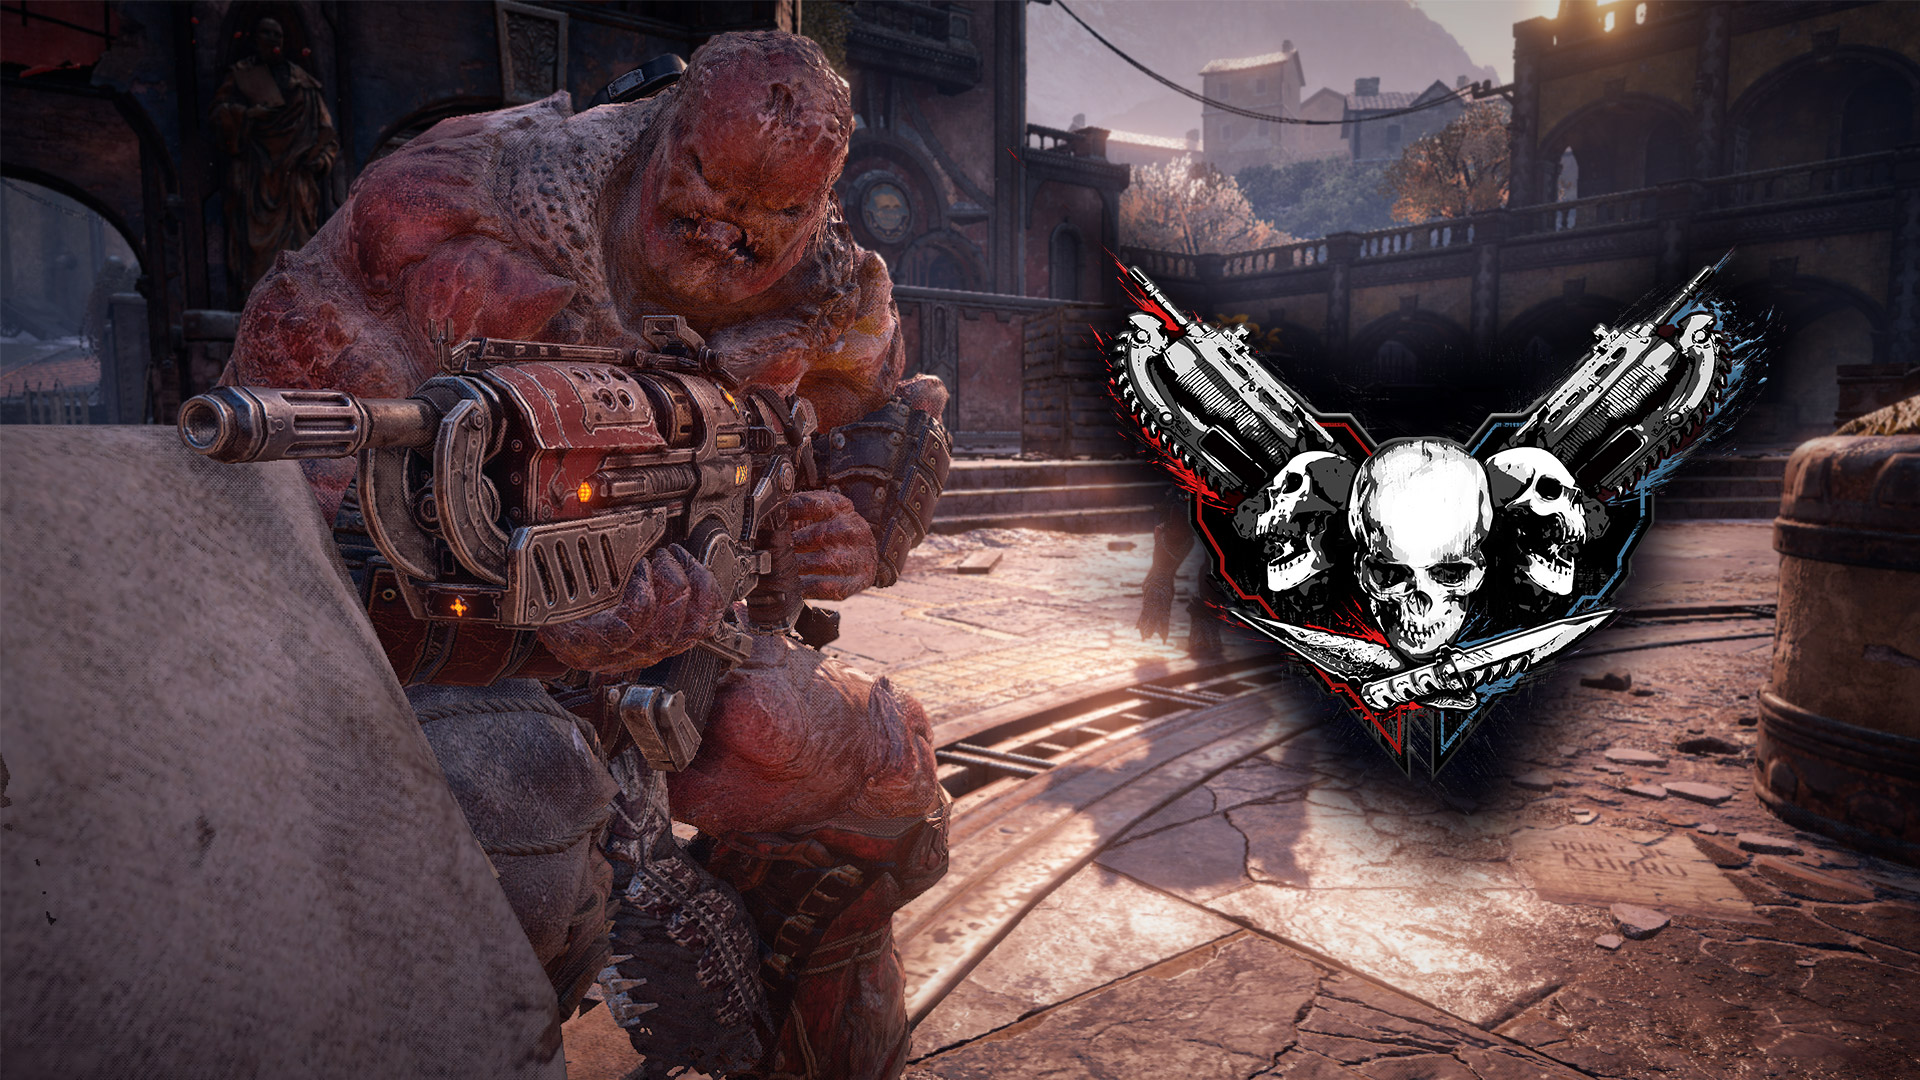 Gears of War 4 - January 2018 Update | Community | Gears of